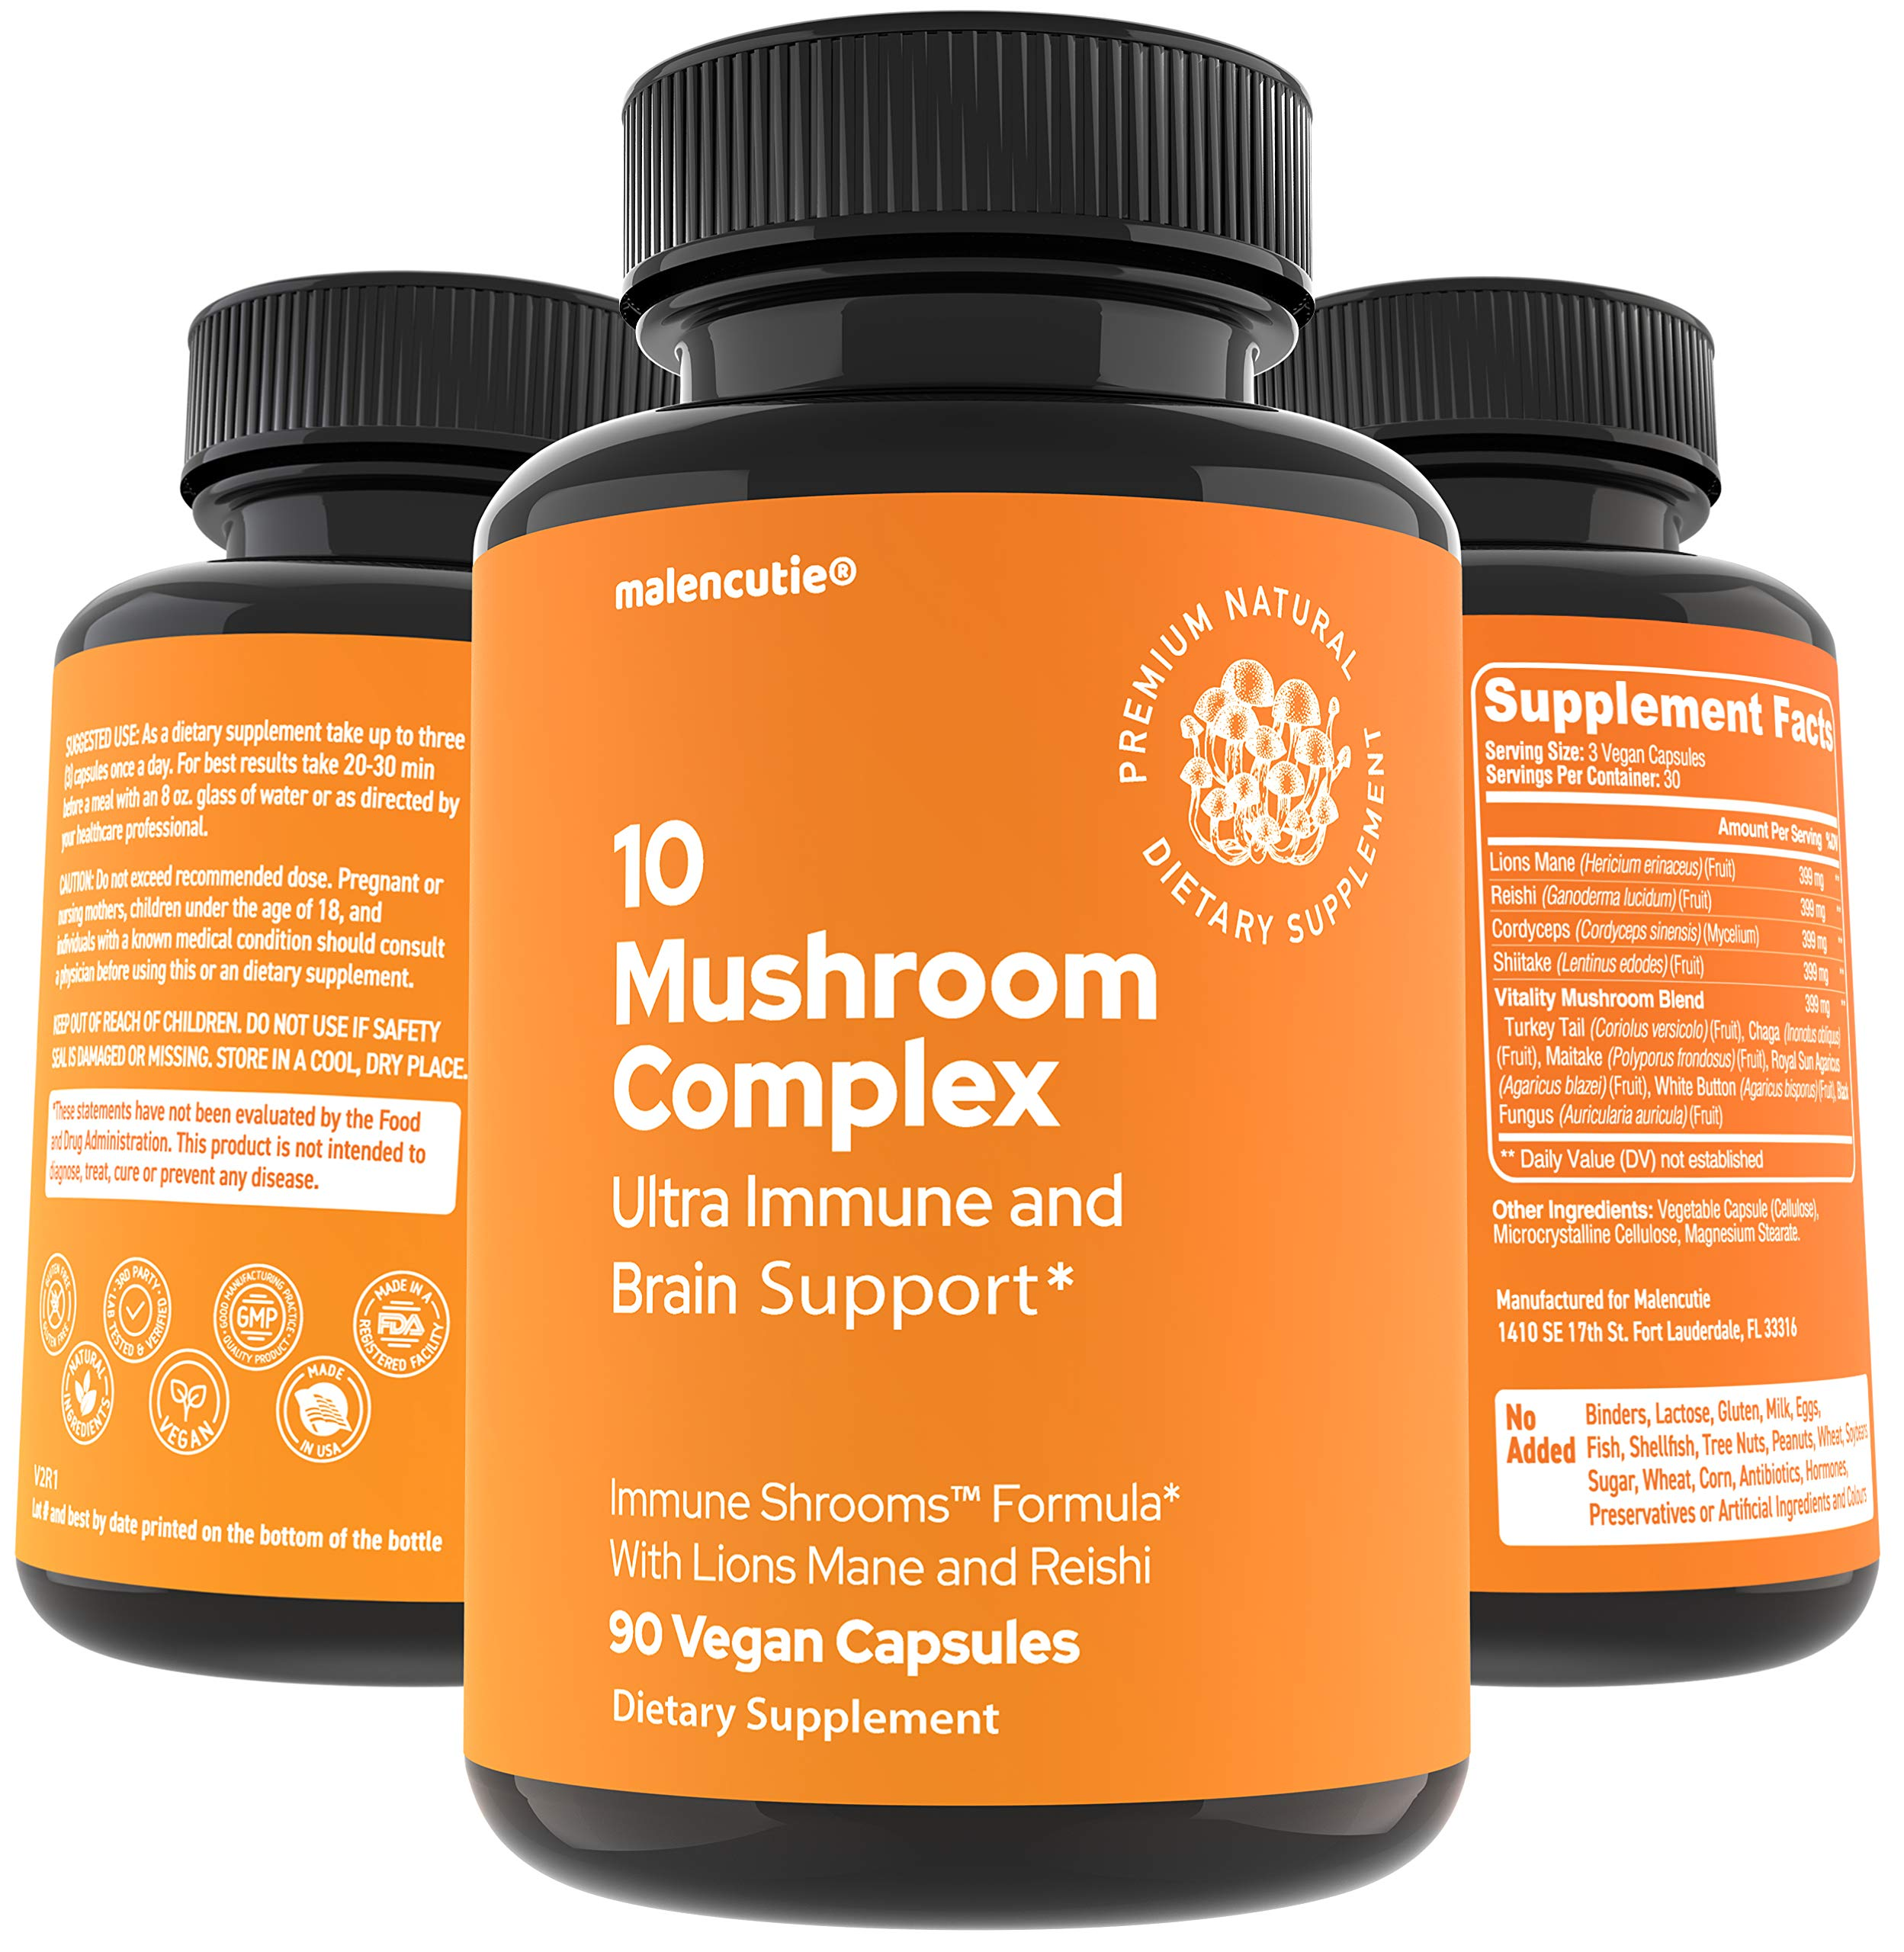 Mushroom Supplement Immunity Energy Booster - 90 Capsules, Brain Supplements, 10 Organic Mushrooms, 2000mg Reishi, Lions Mane, Cordyceps, Shitake, Turkey Tail, Immune Support Complex by Malencutie